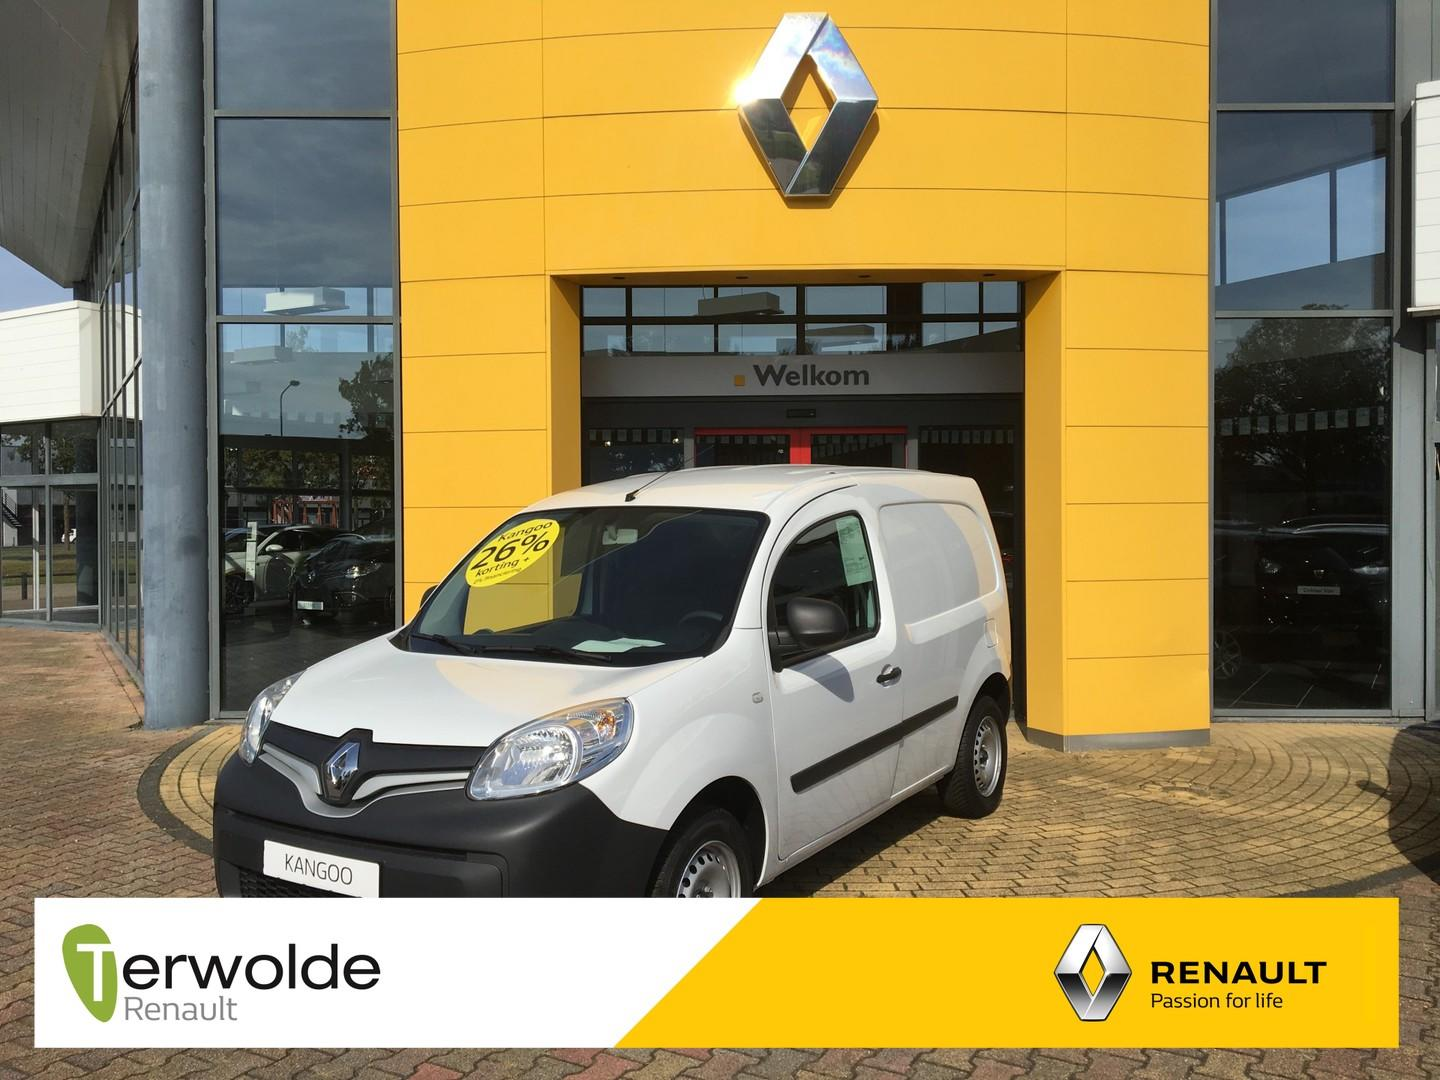 Renault Kangoo Express 1.5 dci 75 express comfort 26,5% korting ! v.a. 0% financial lease !